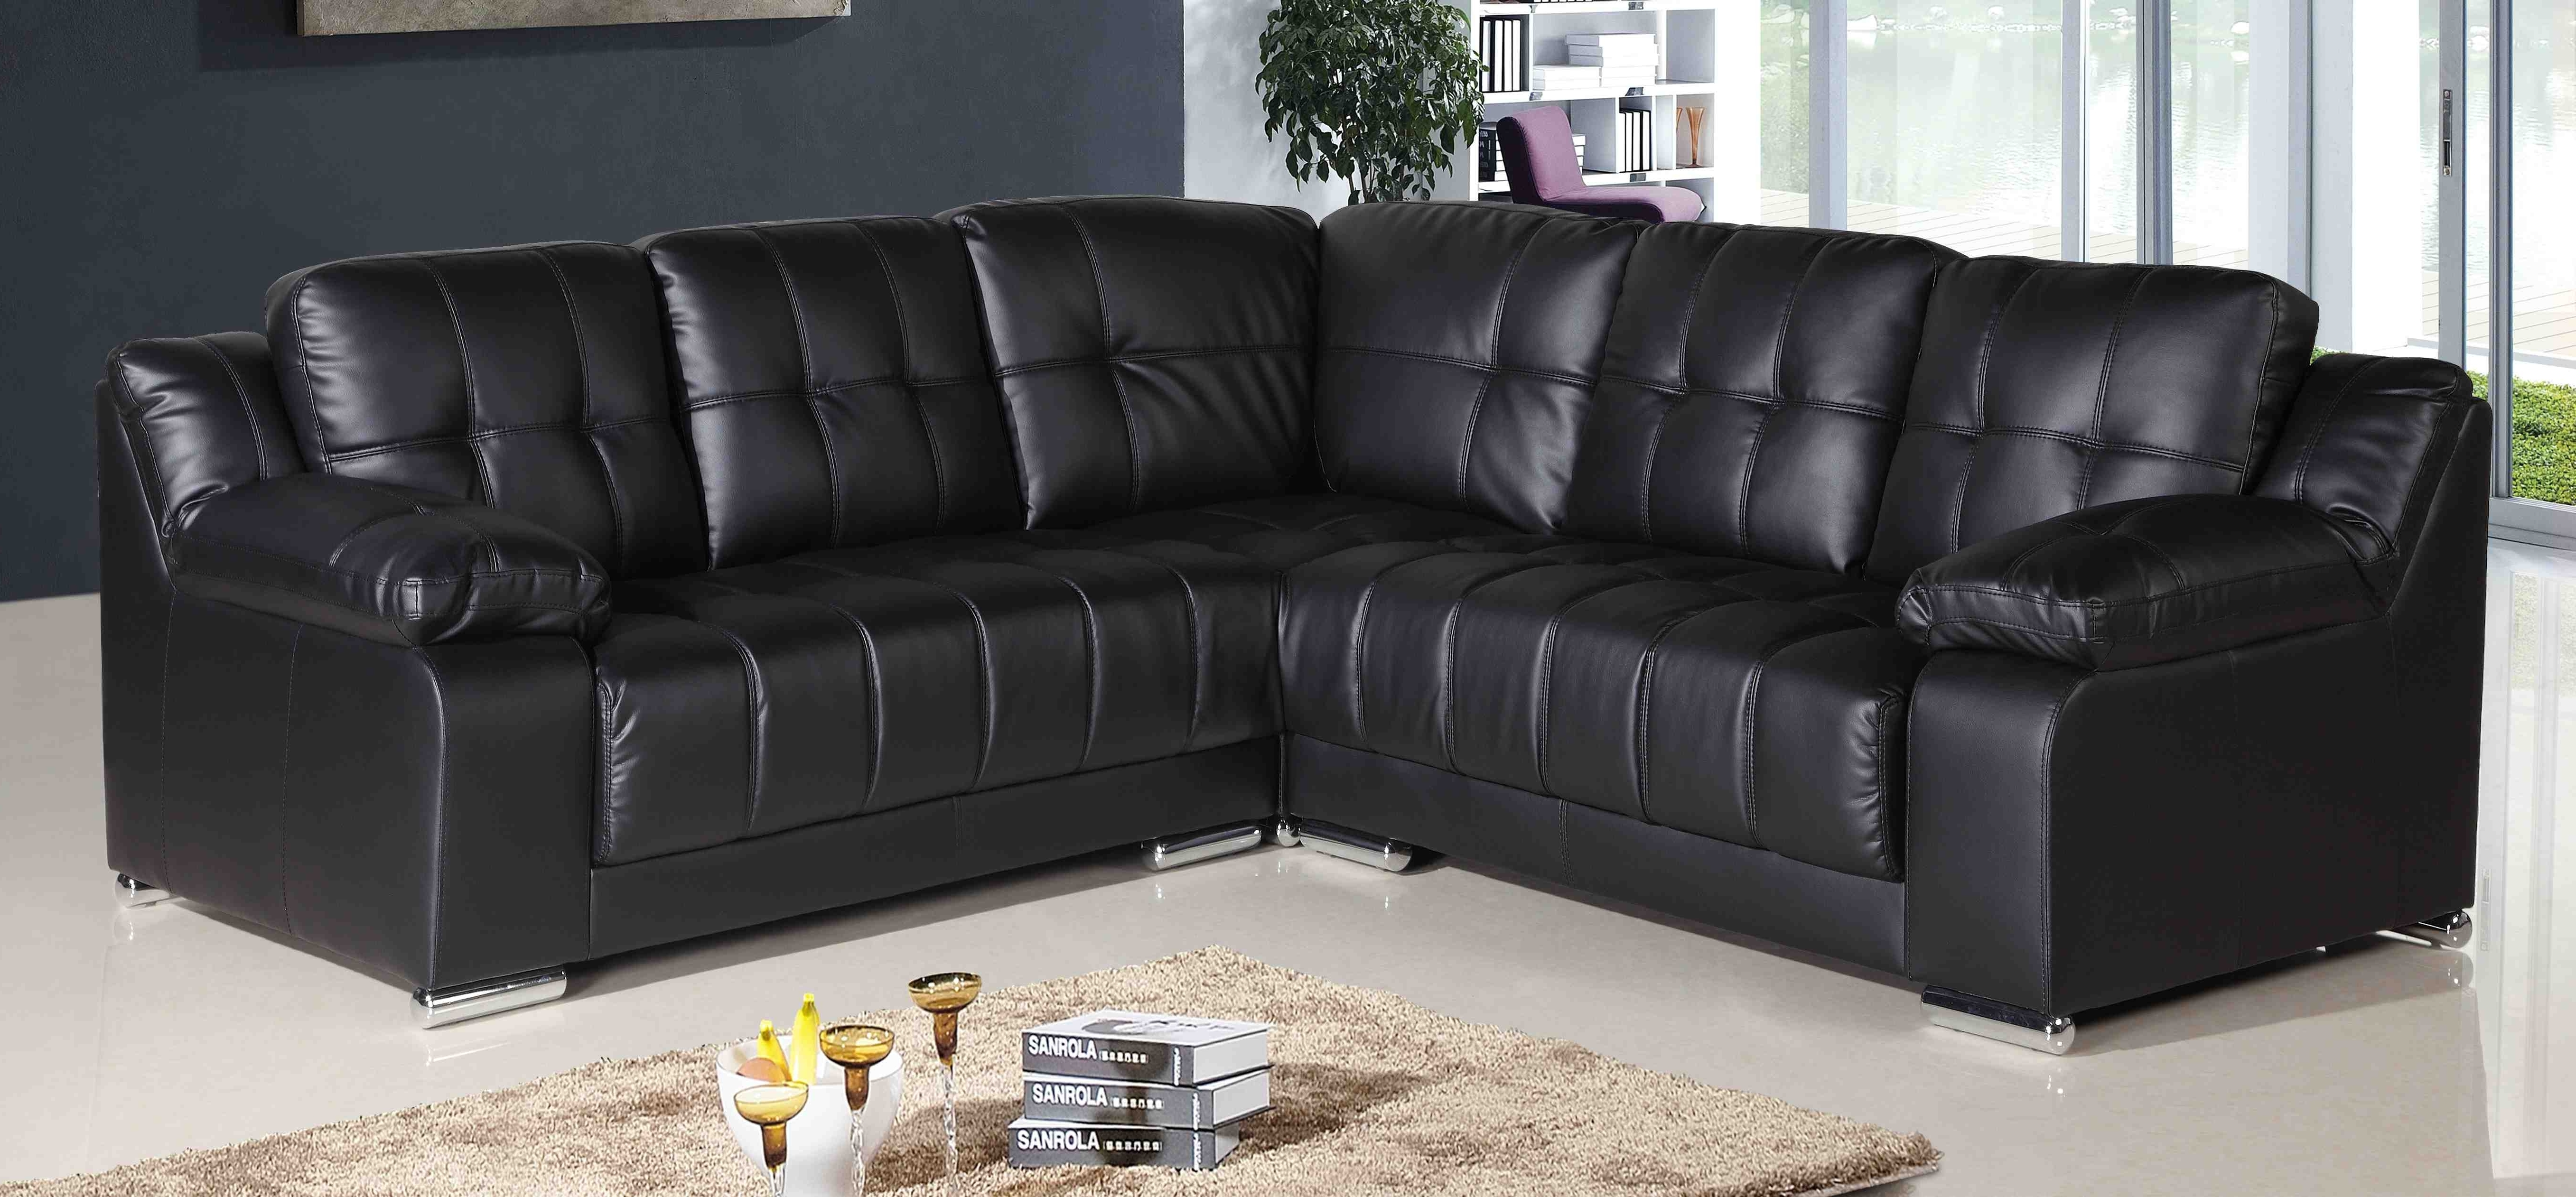 Most Recently Released Leather Corner Sofas With Extra Long Leather Corner Sofas • Leather Sofa (View 12 of 15)